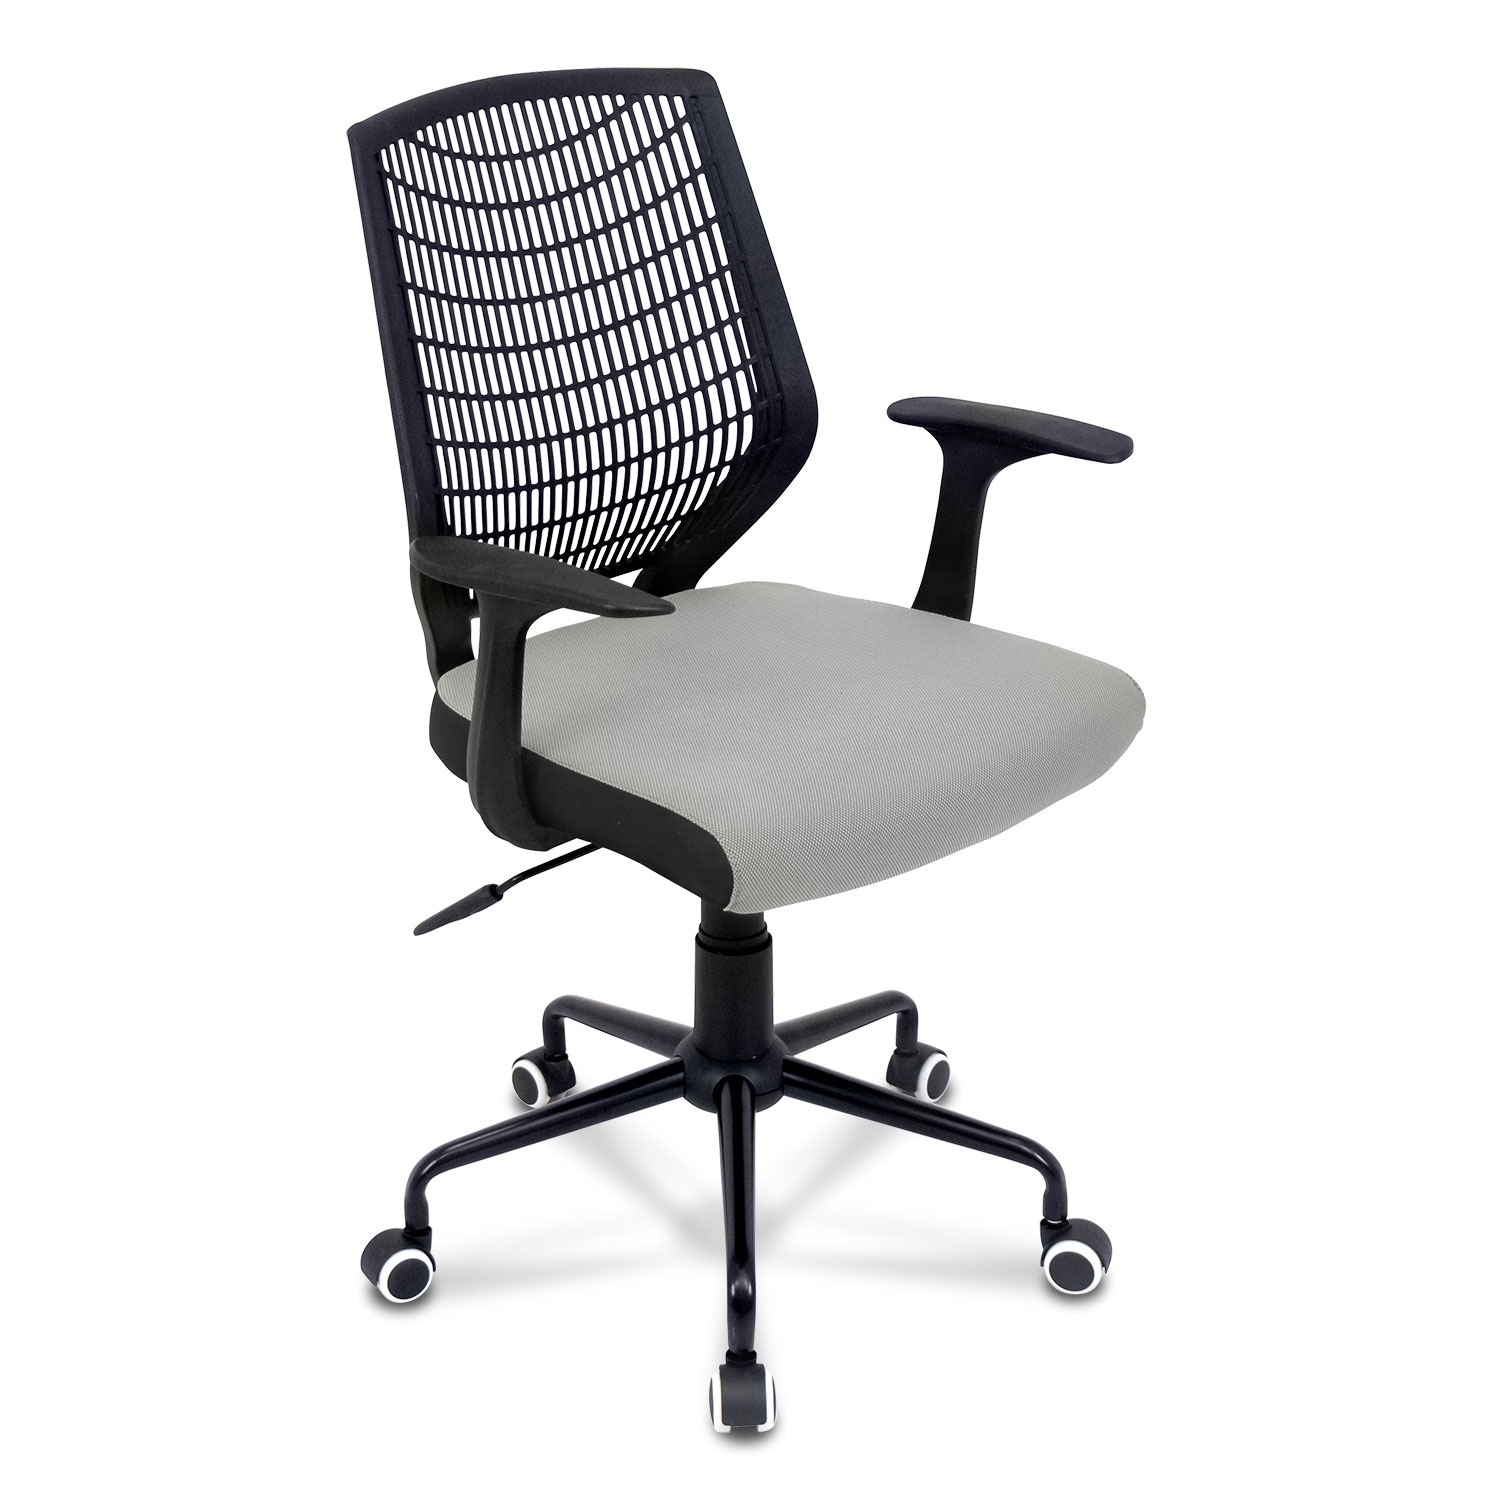 Helix Office Chair - Black